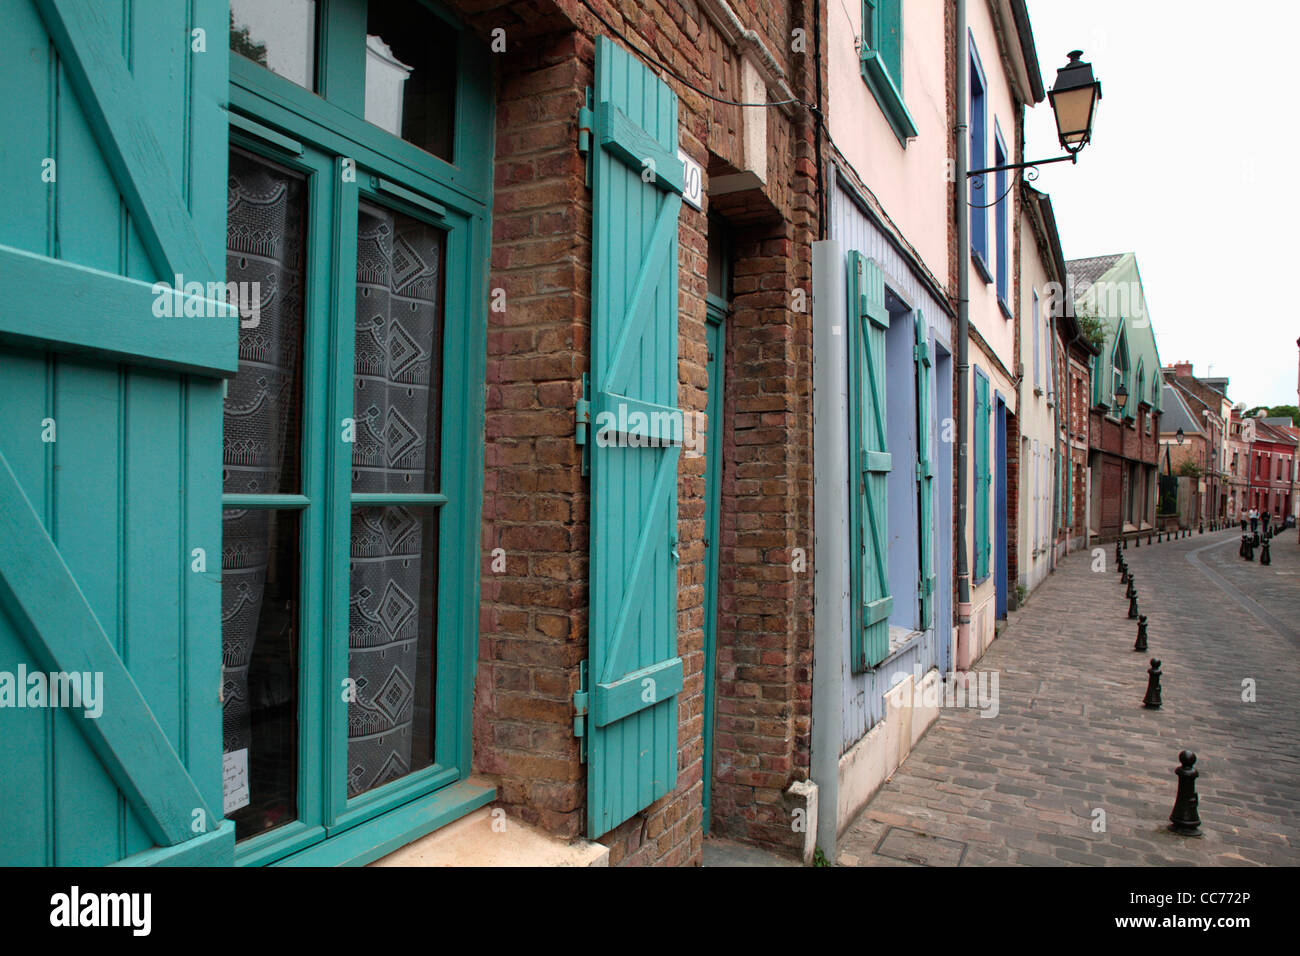 France, Amiens, Old houses in Saint Leu neighbourhood - Stock Image